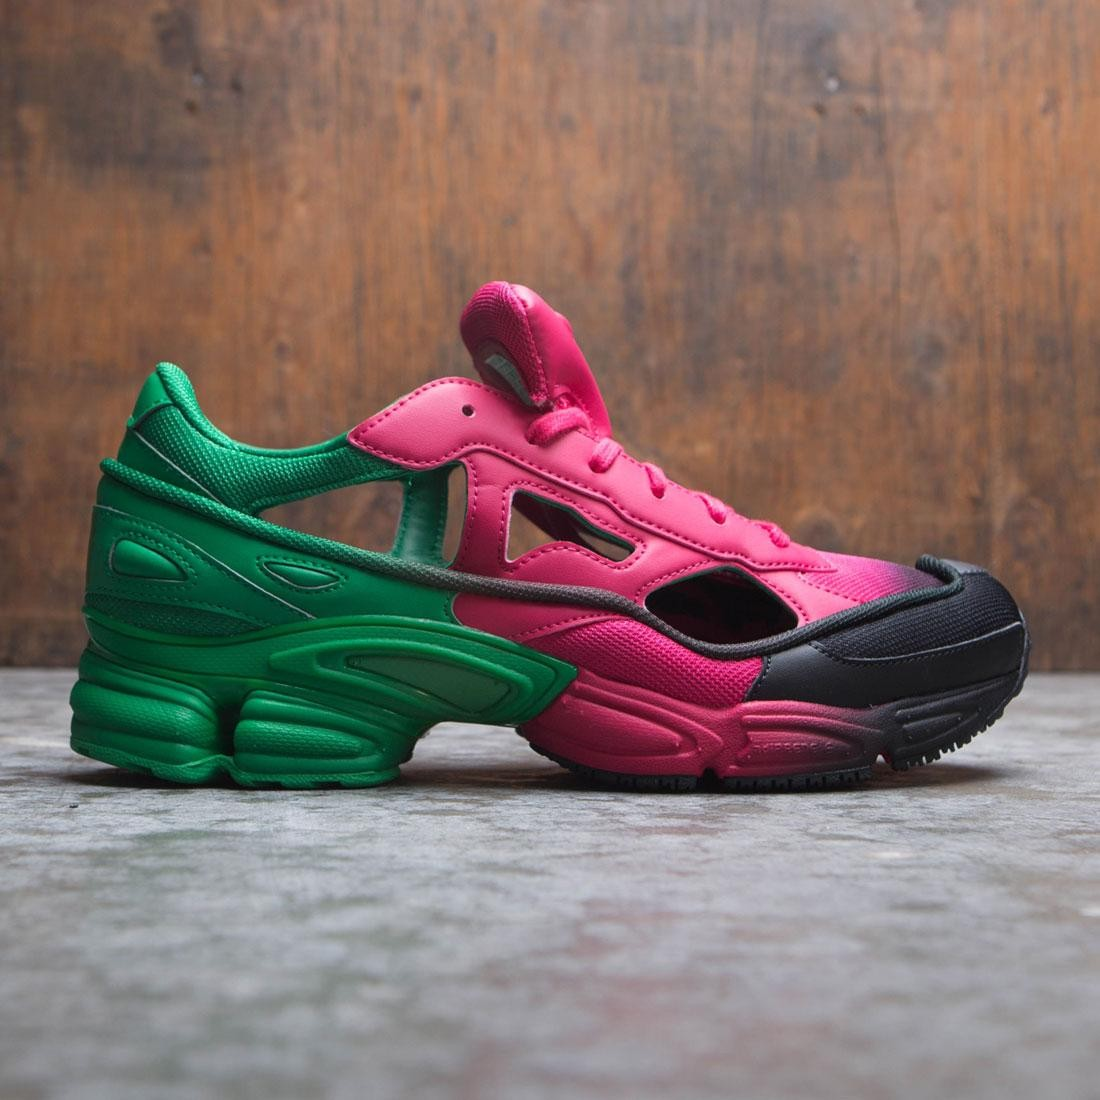 Adidas Raf Simons Men Replicant Ozweego (pink / green / core black)